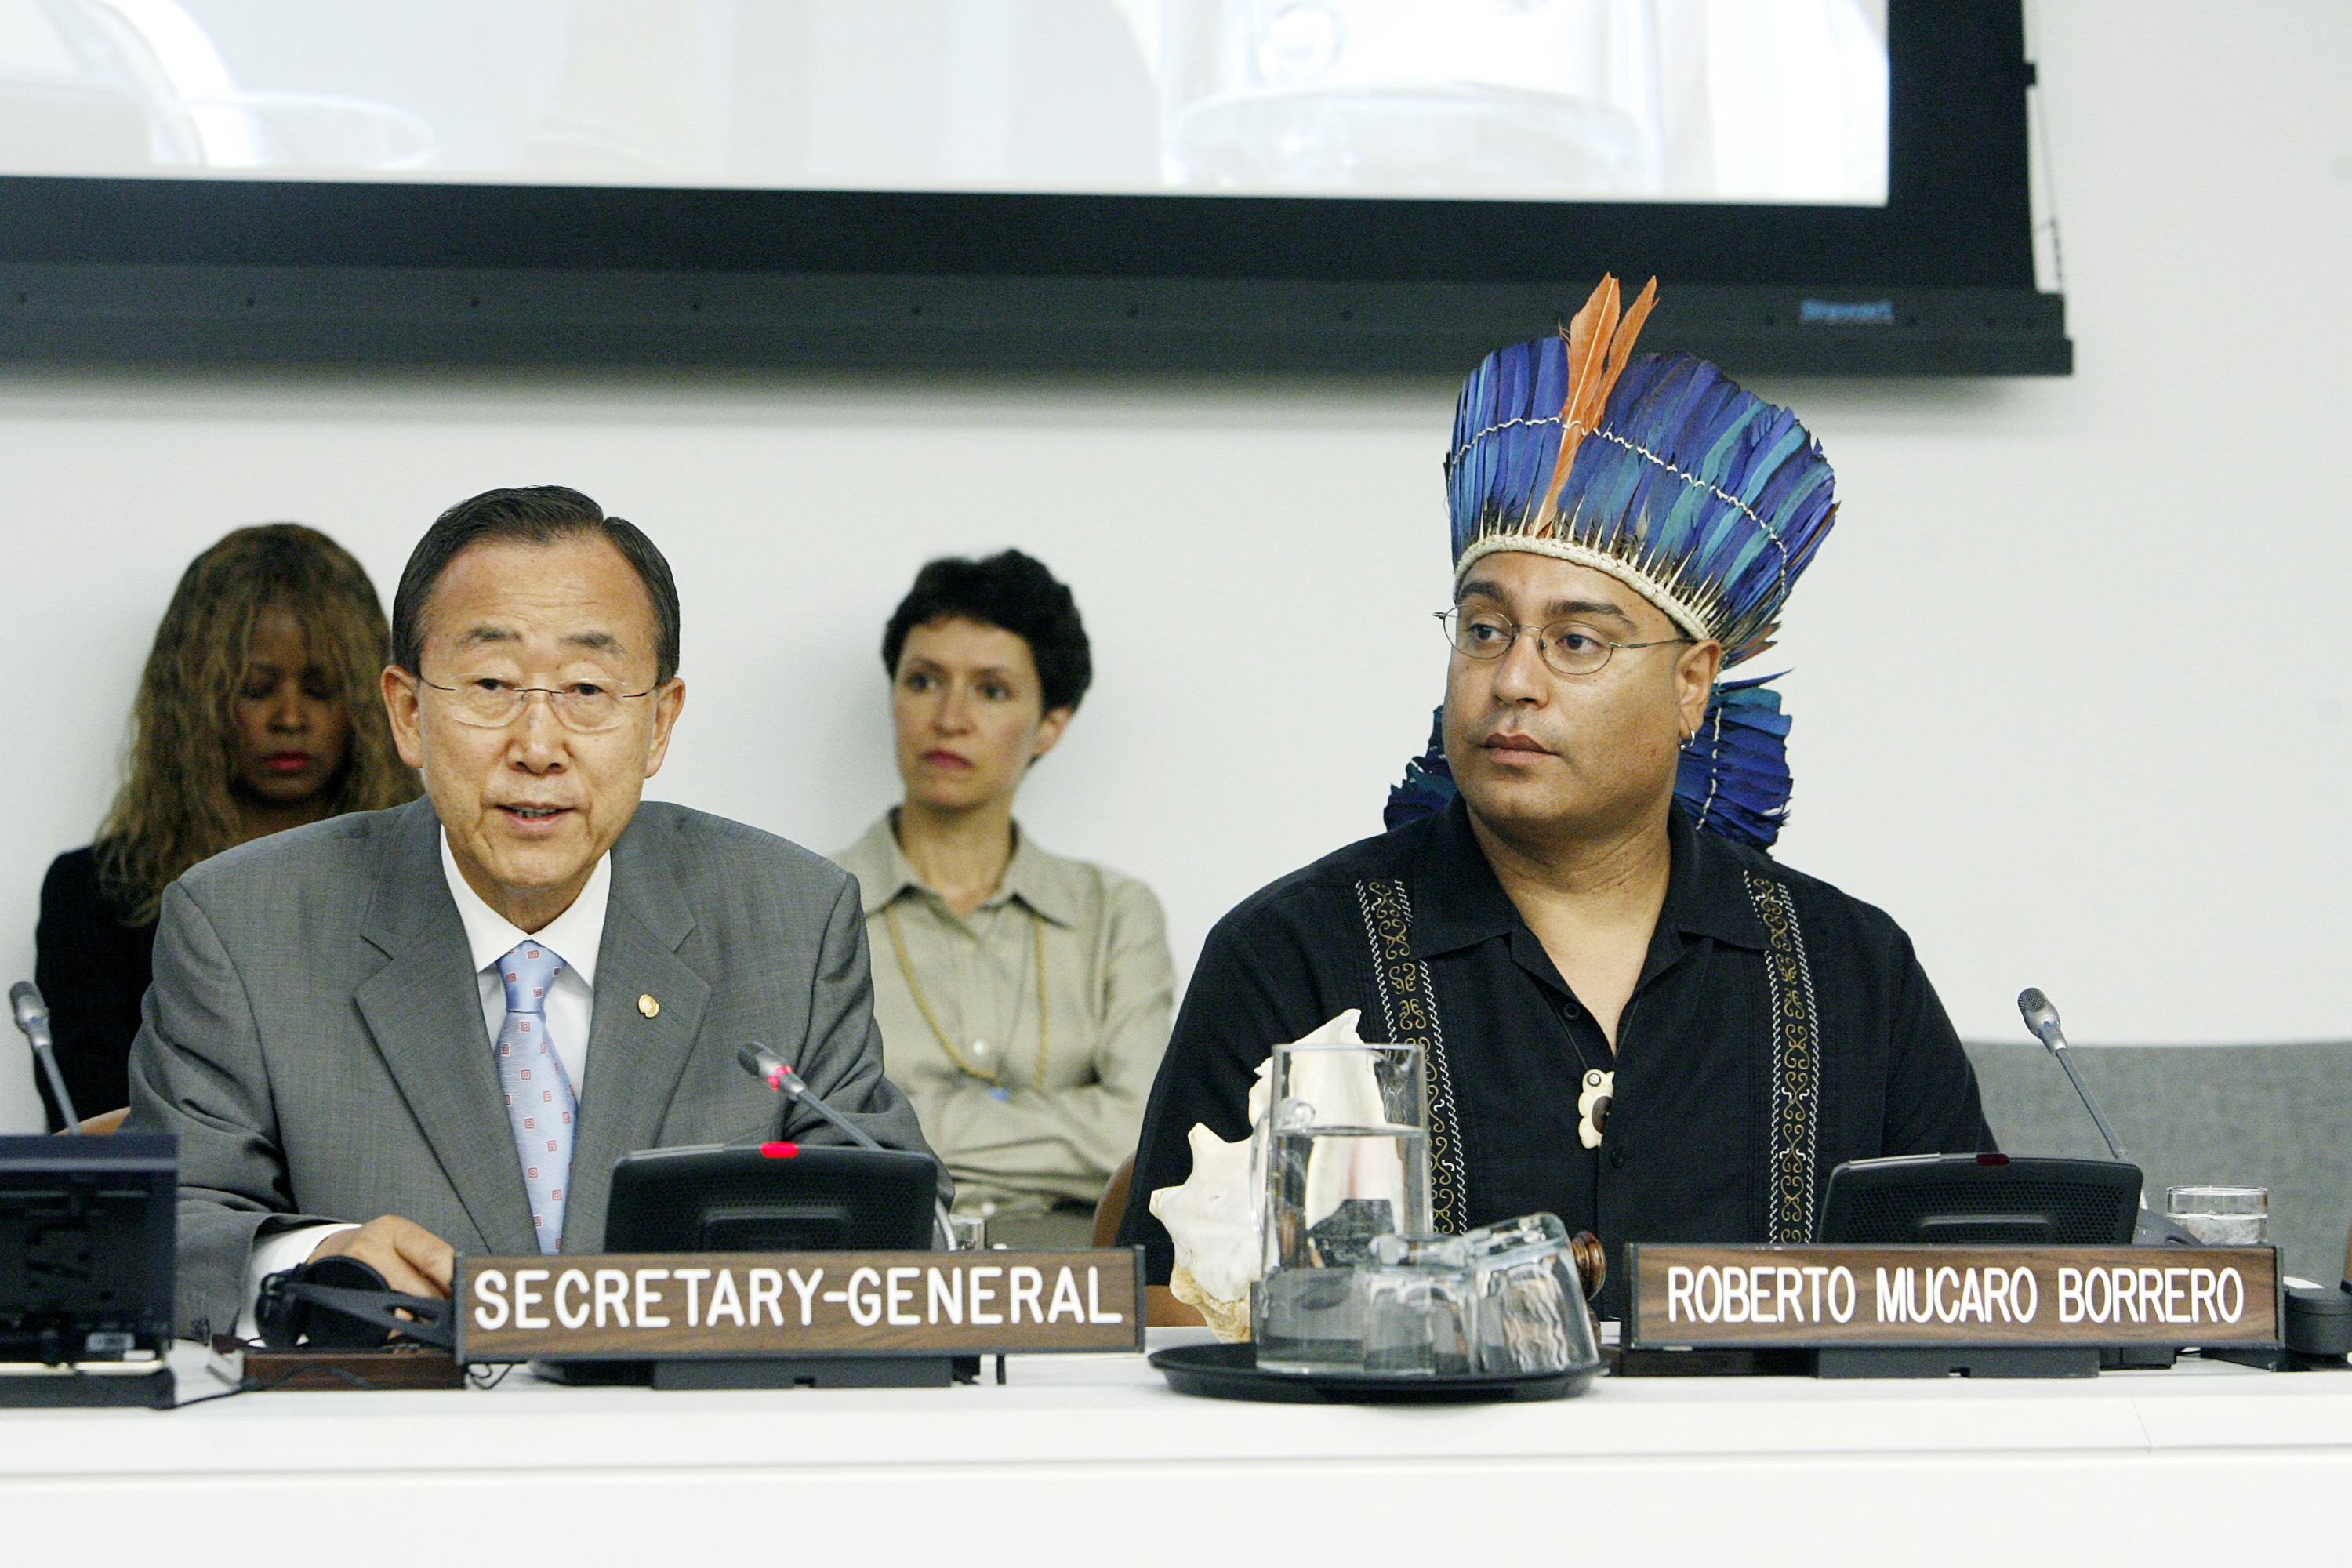 R. Múkaro Borrero and UN Secretary General Ban Ki Moon, 2010. Photo credit: Evan Schneider